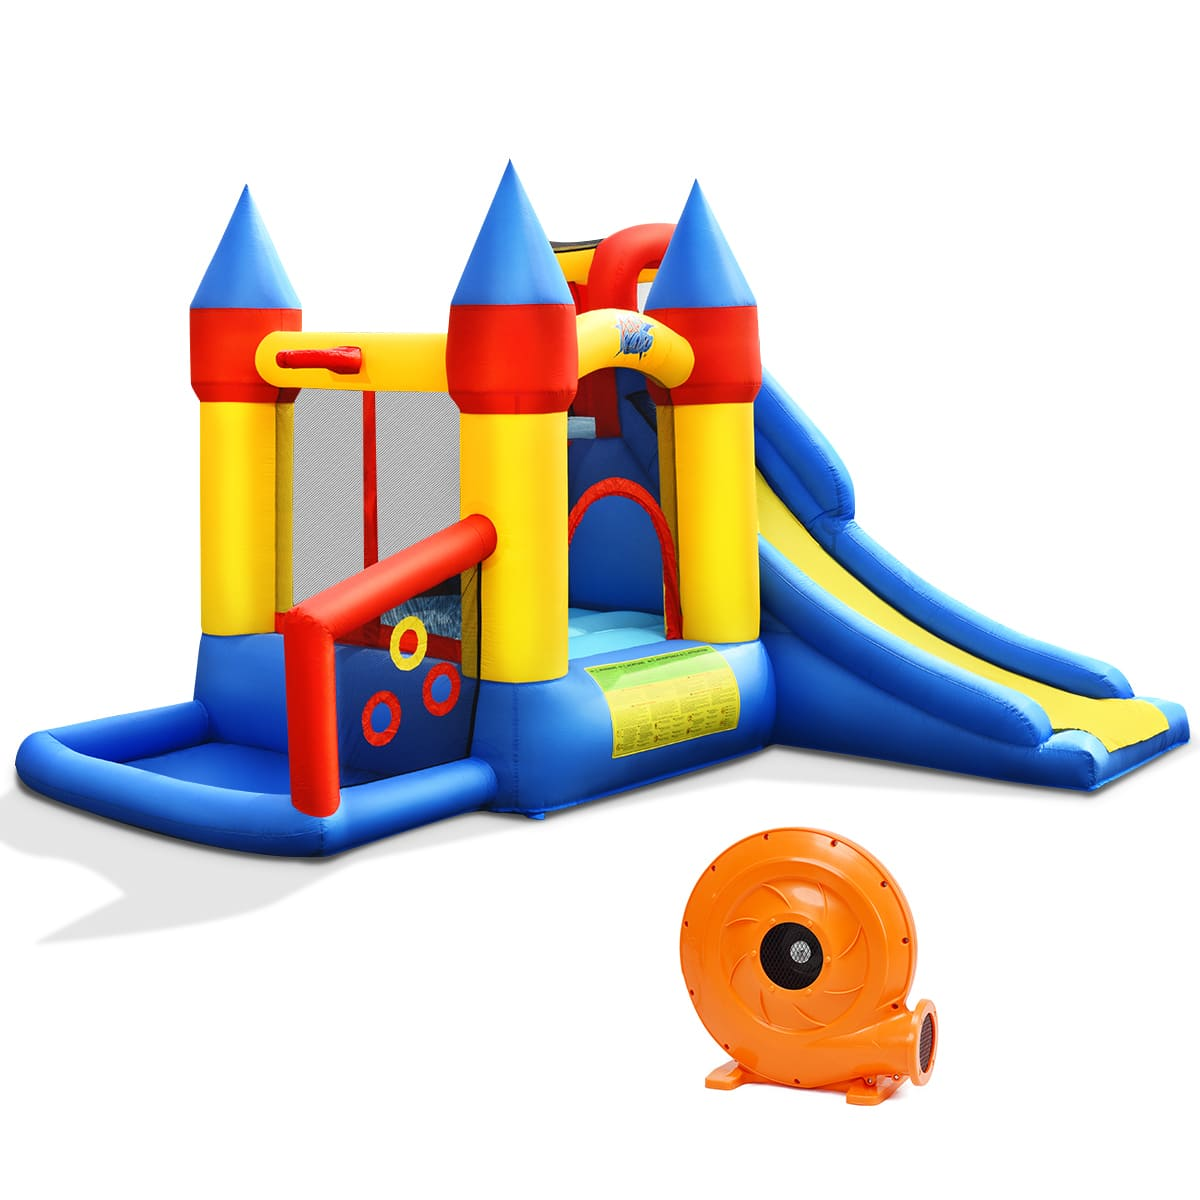 Inflatable Castle Bounce House with Slide and Balls Includes 780W Air Blower - FREE SHIPPING